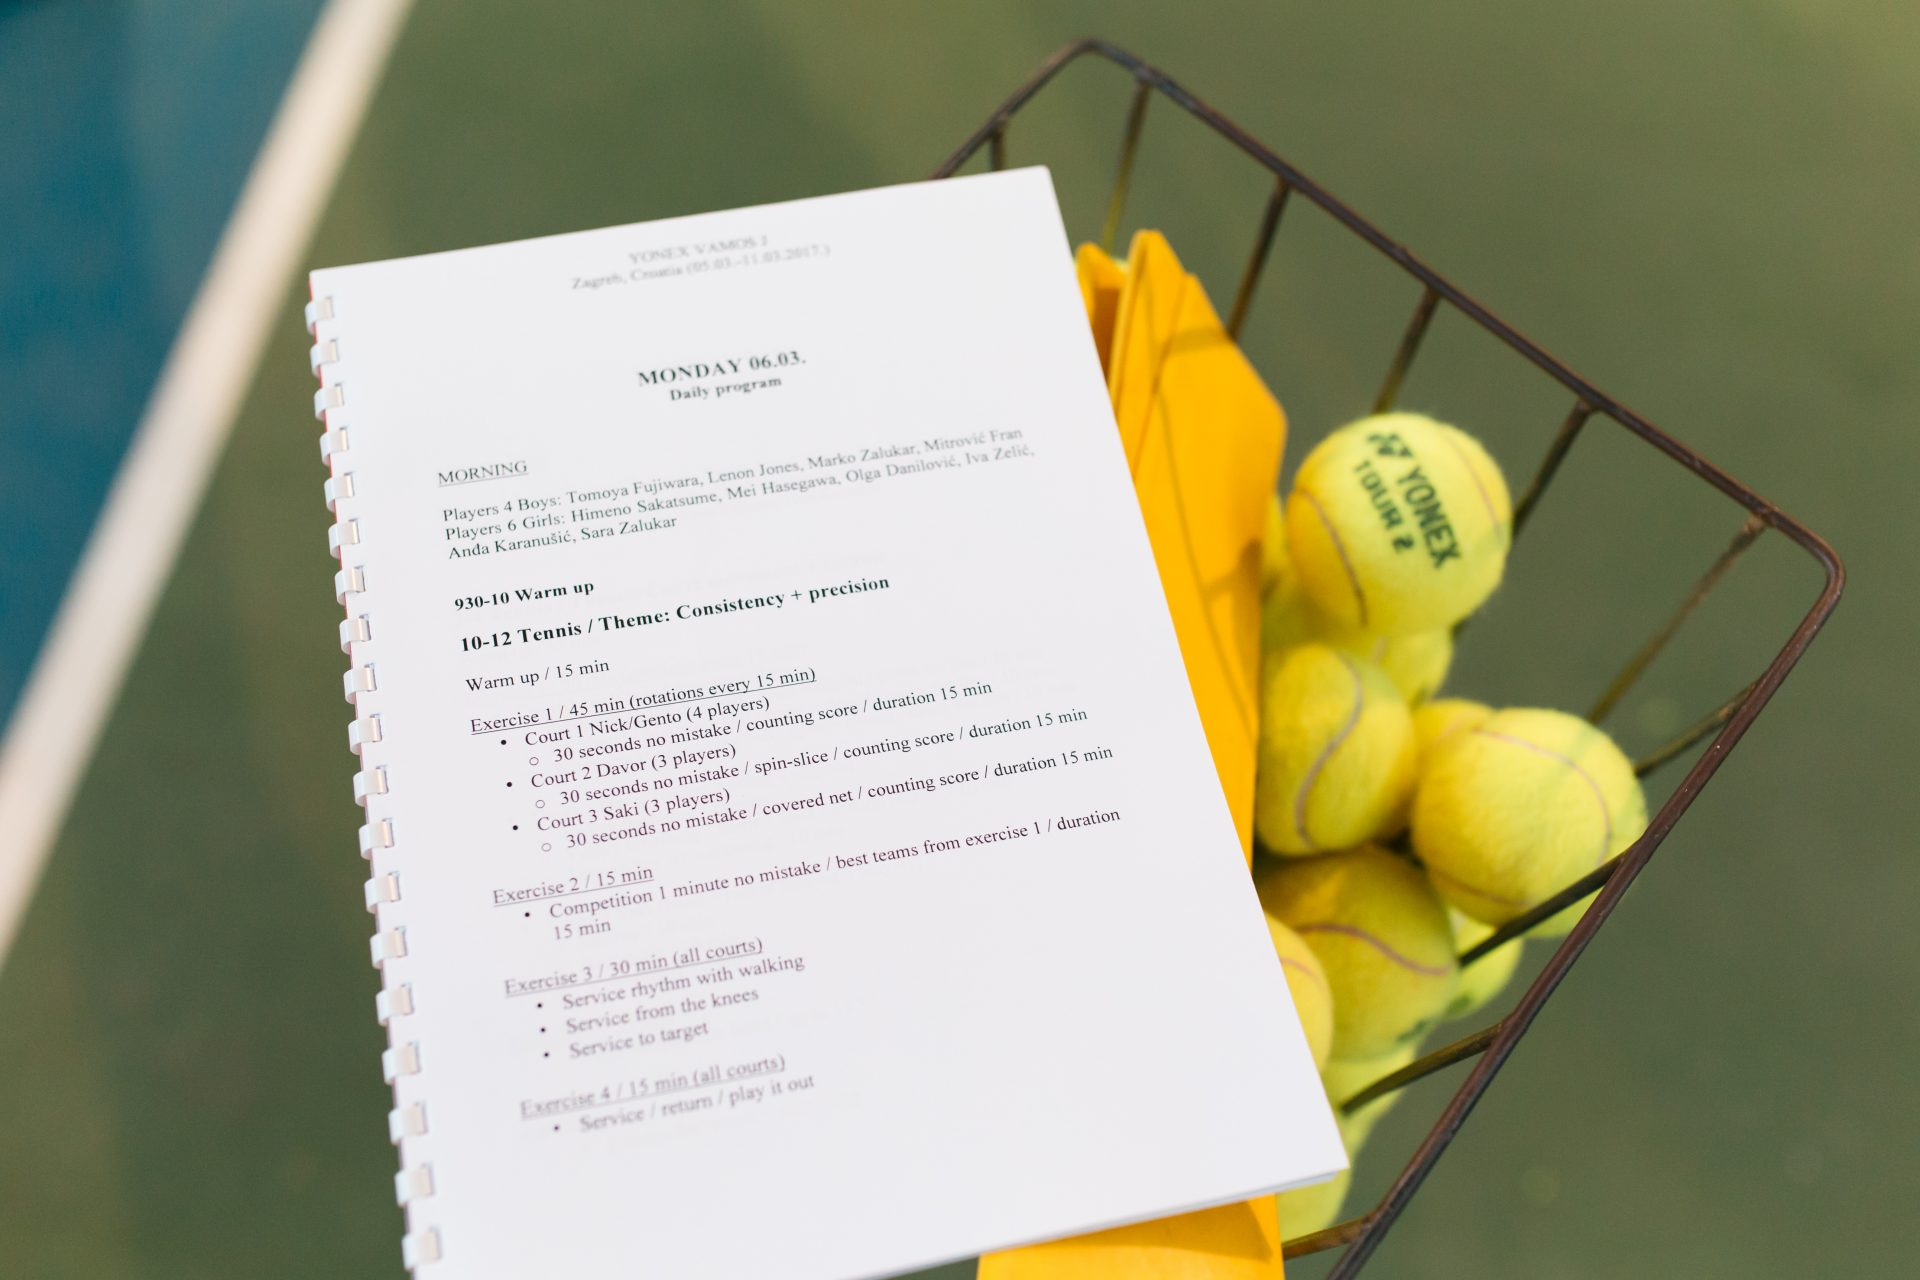 Tennis Coach Nick Horvat My Approach Integrative Coaching In Tennis YONEX Photo by Vuri Matija